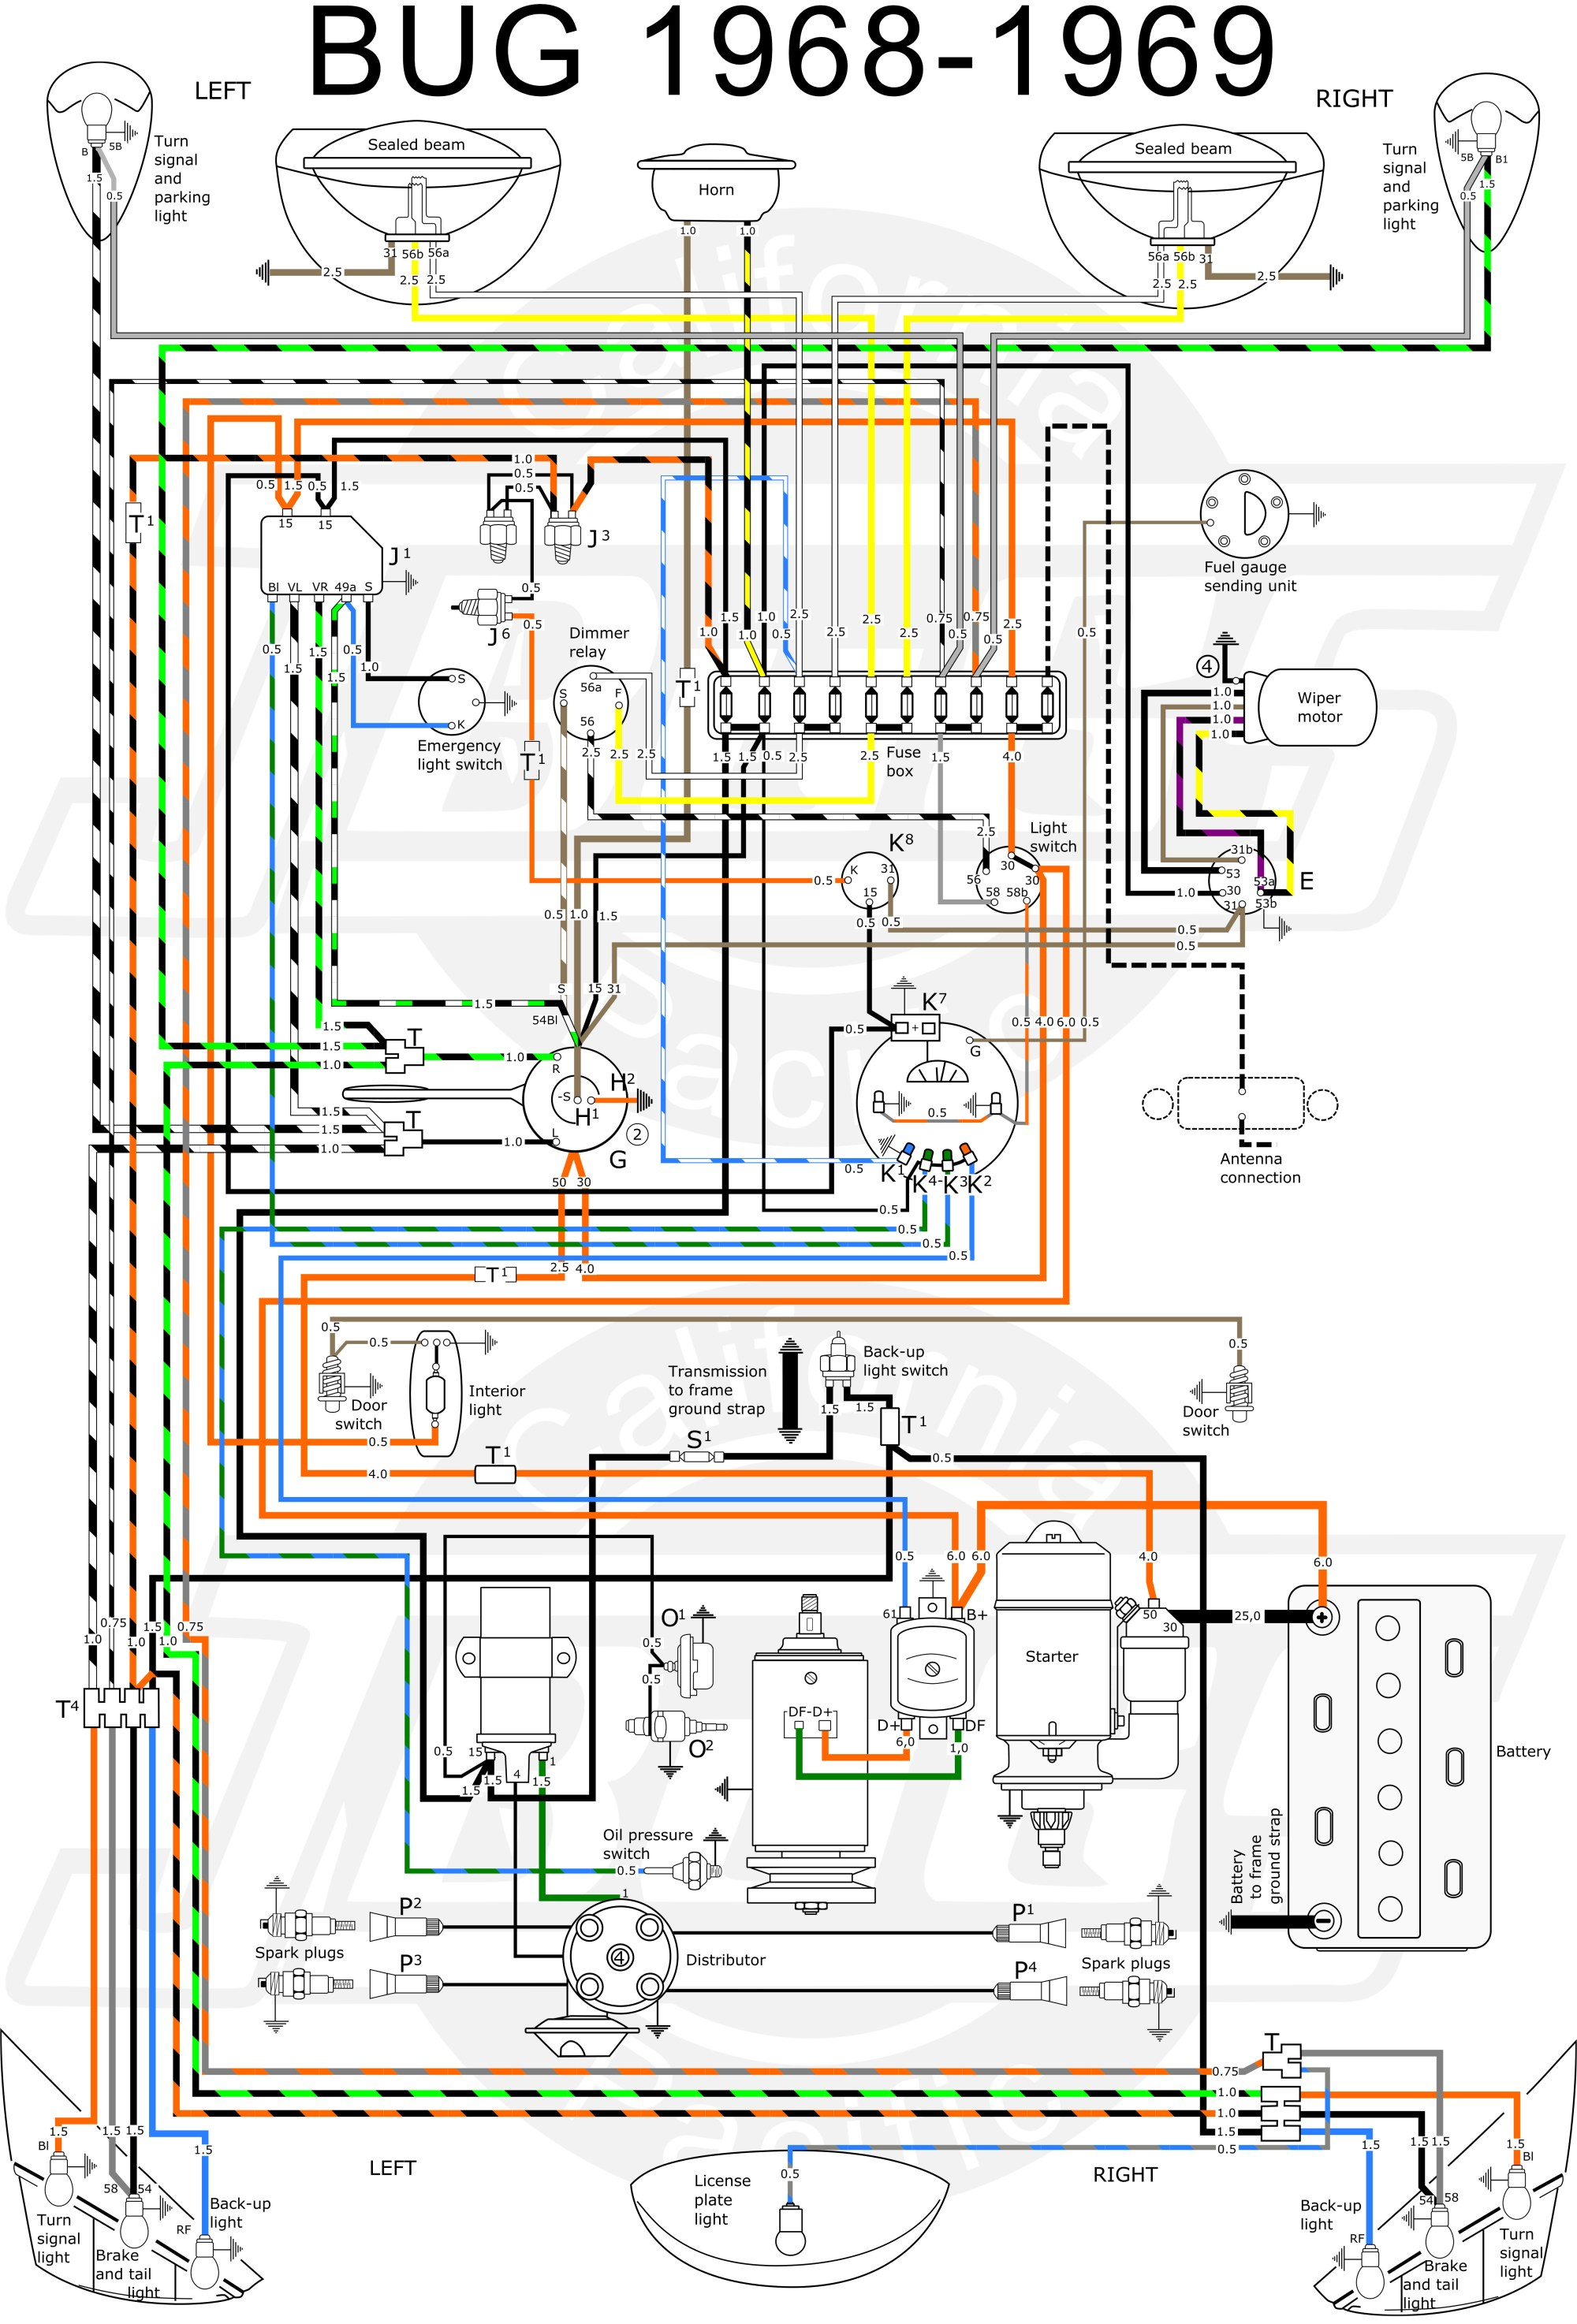 hight resolution of 1996 jetta engine diagram wiring library 1996 jetta engine diagram